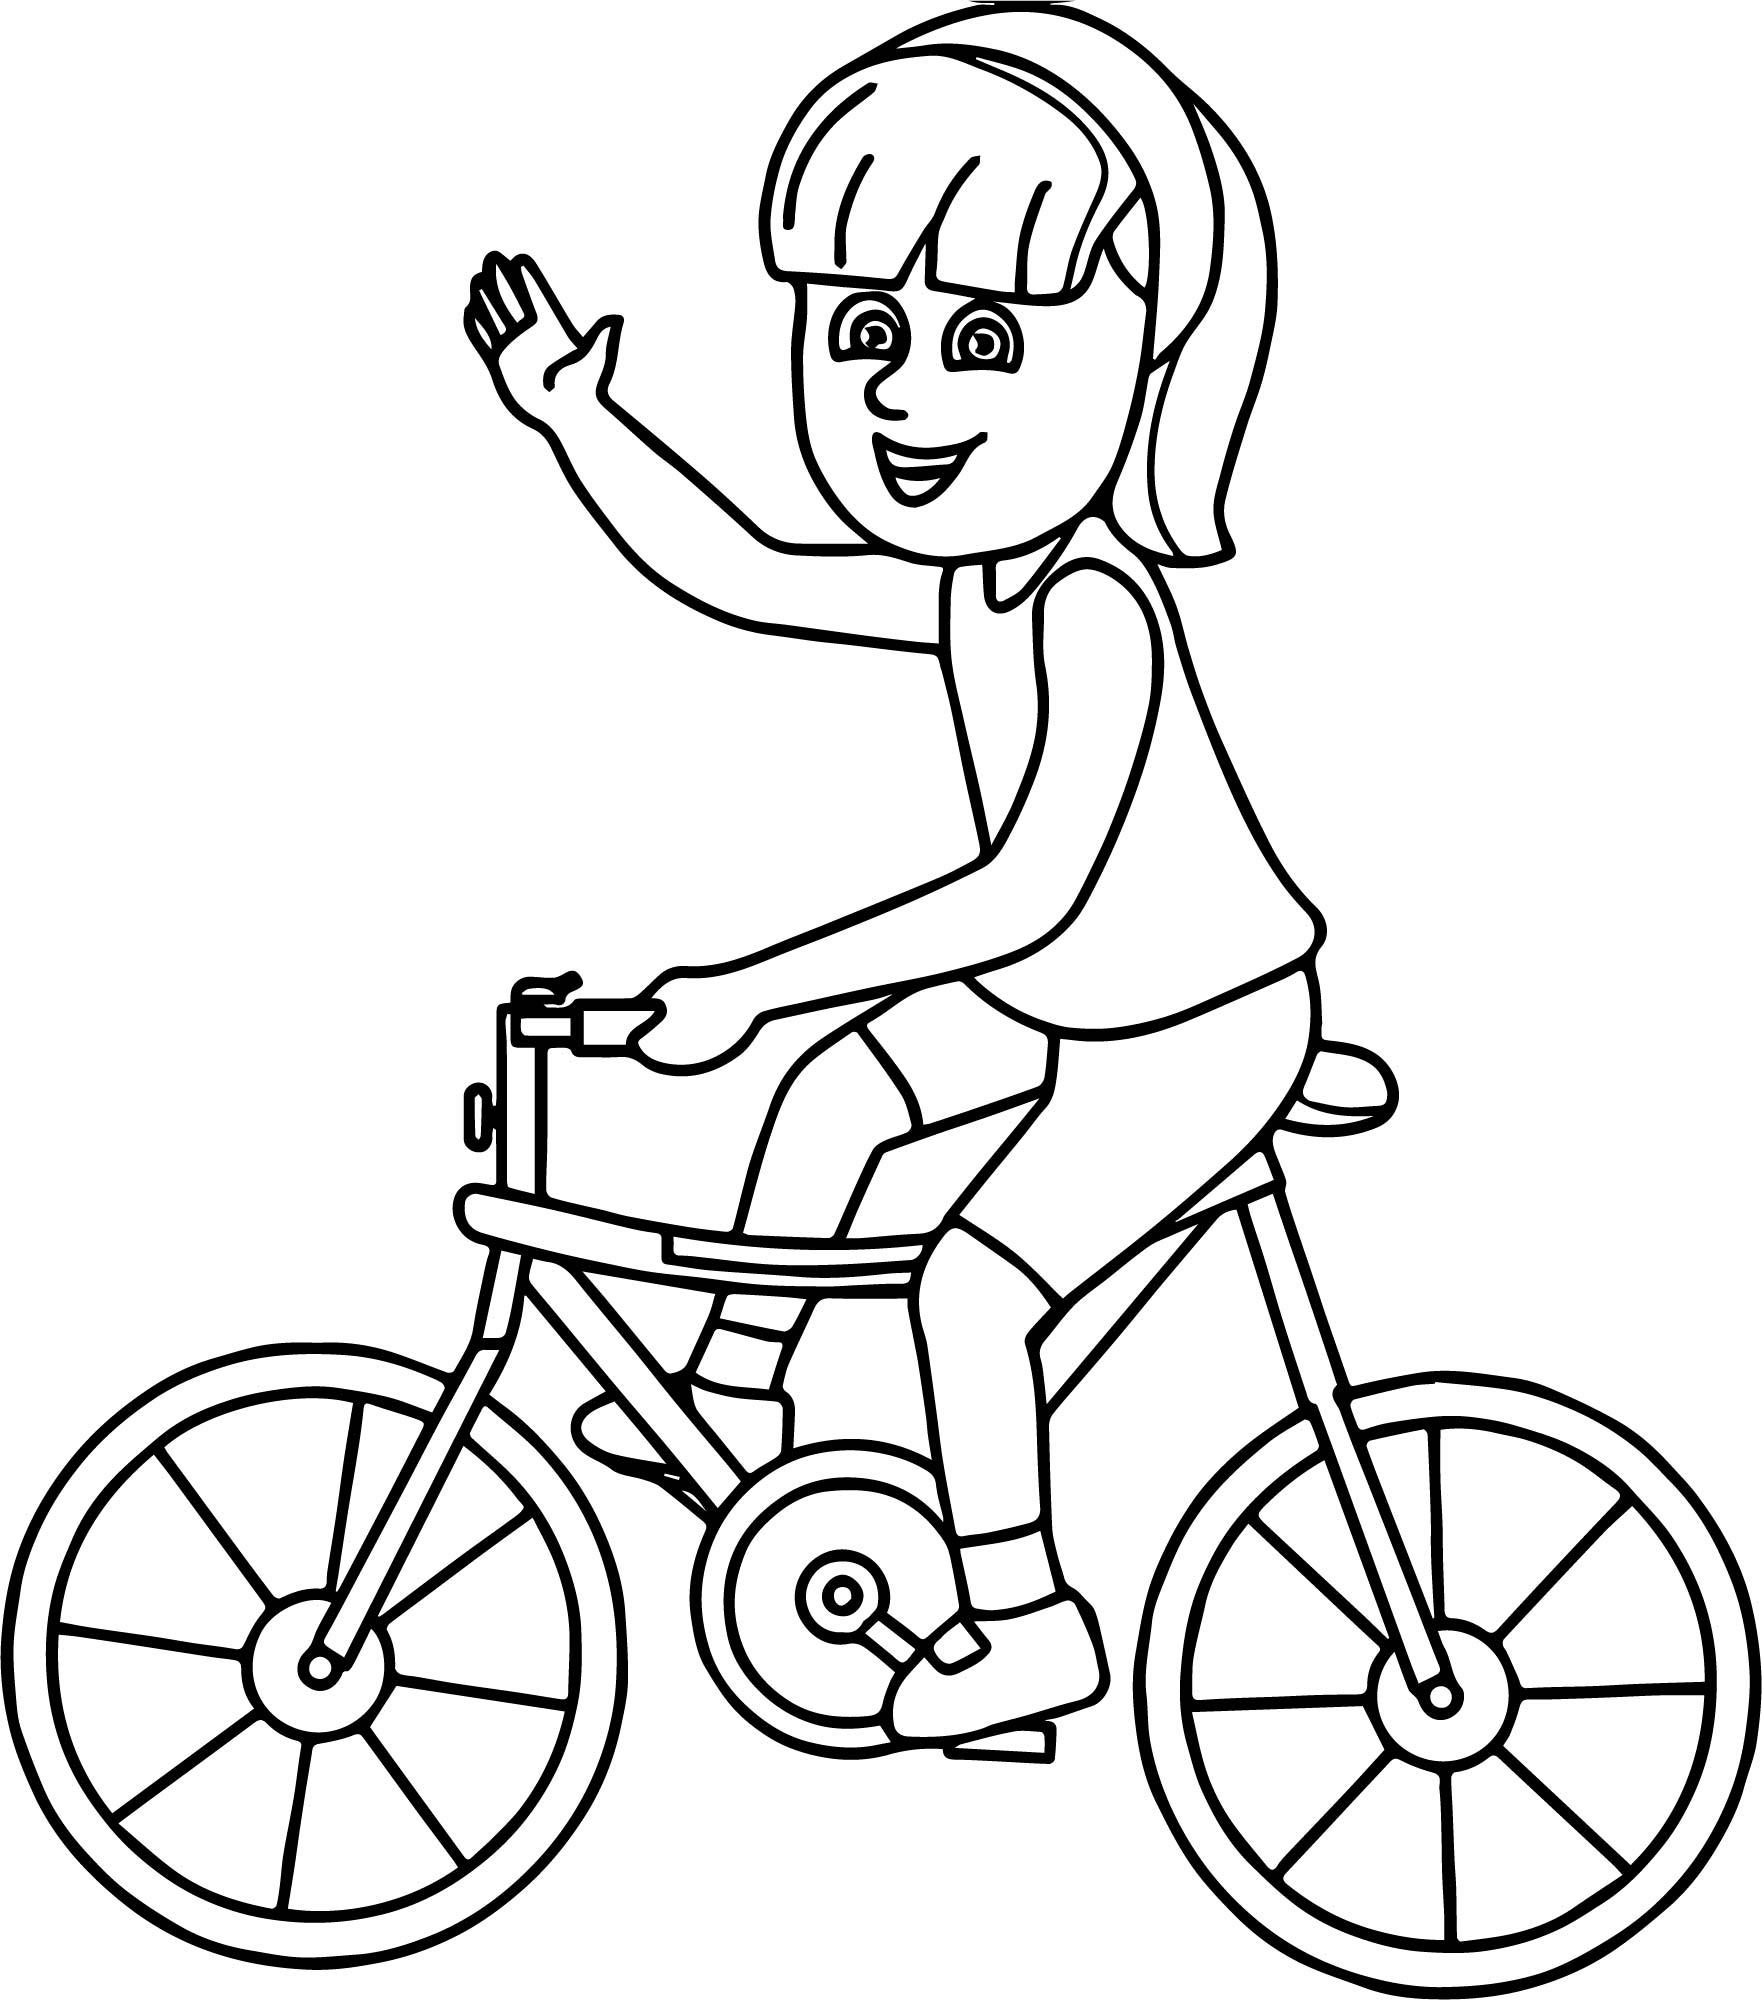 Riding Girl On Bicycle Coloring Page Wecoloringpage